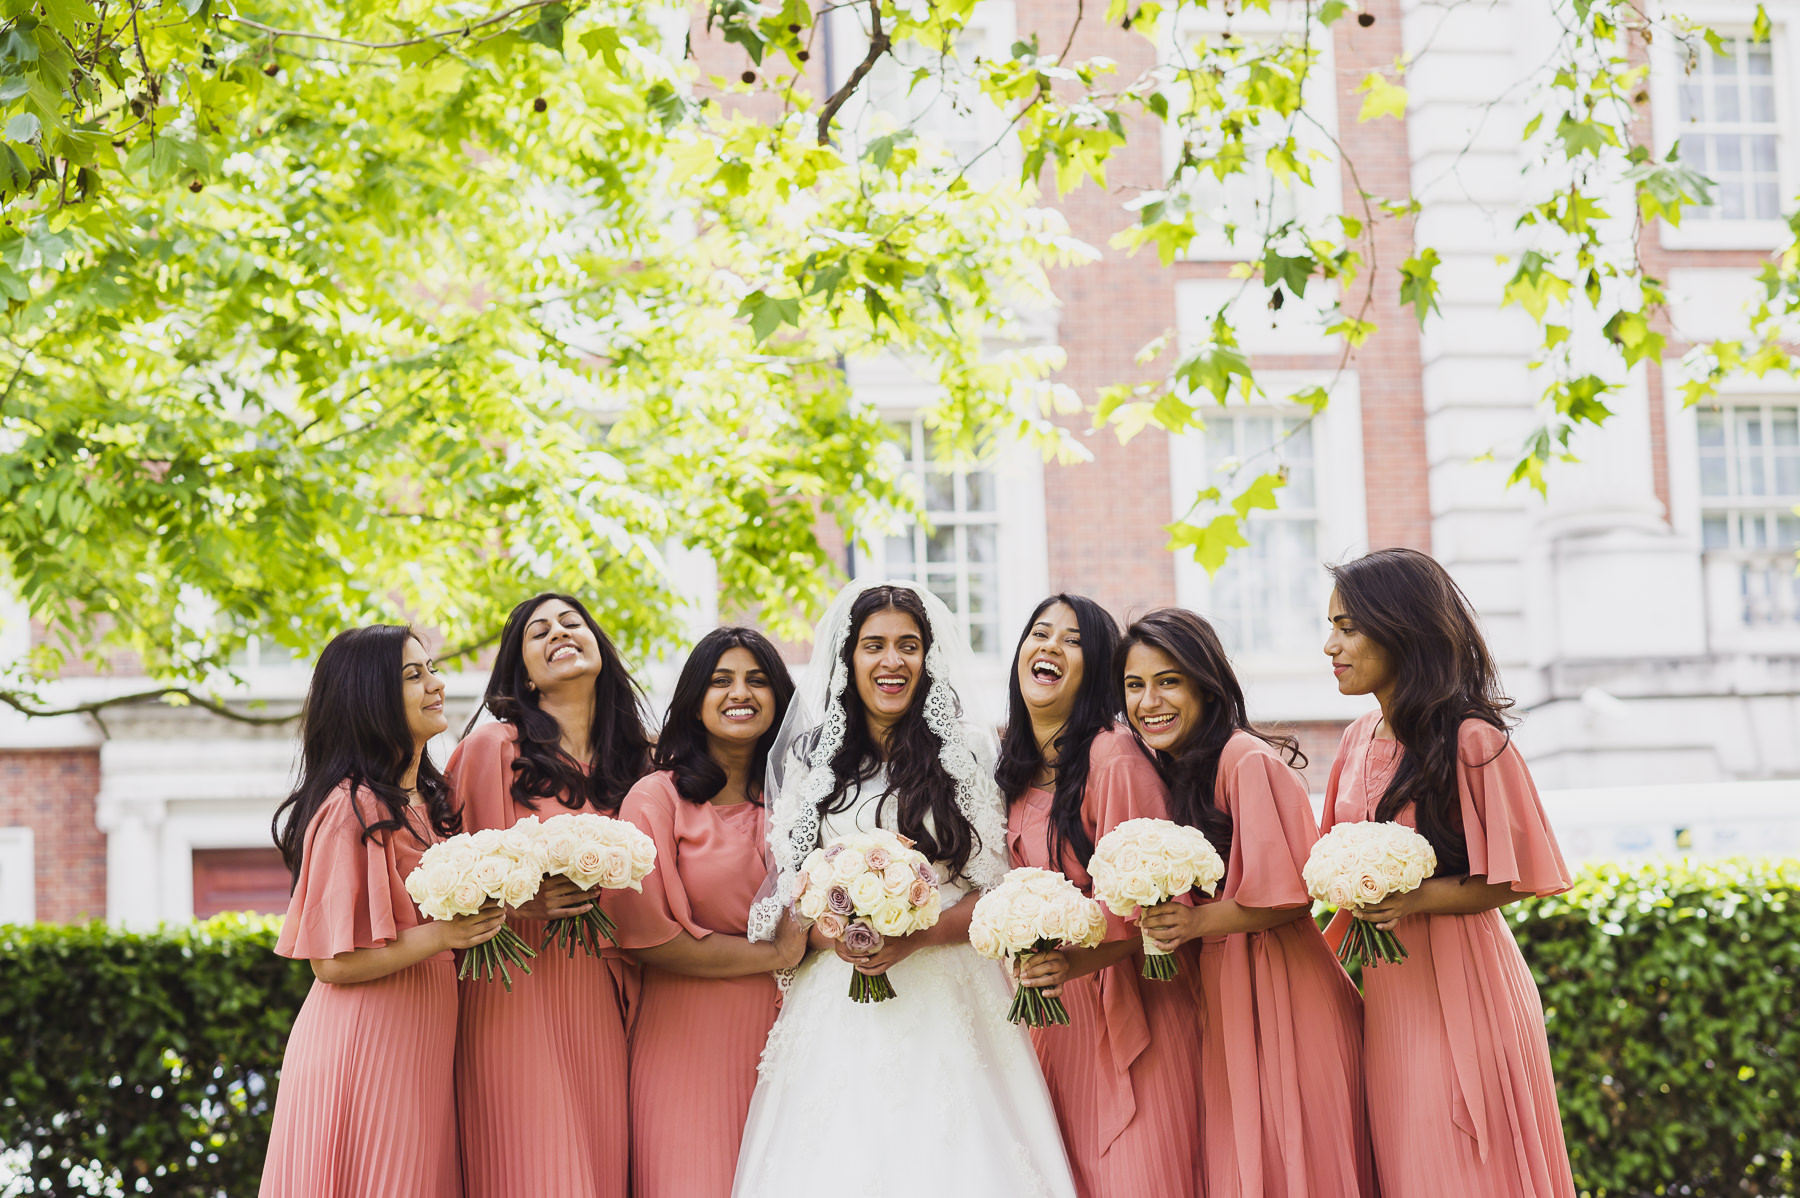 Bridal Party Christian Wedding Photography Mayfair Photographer